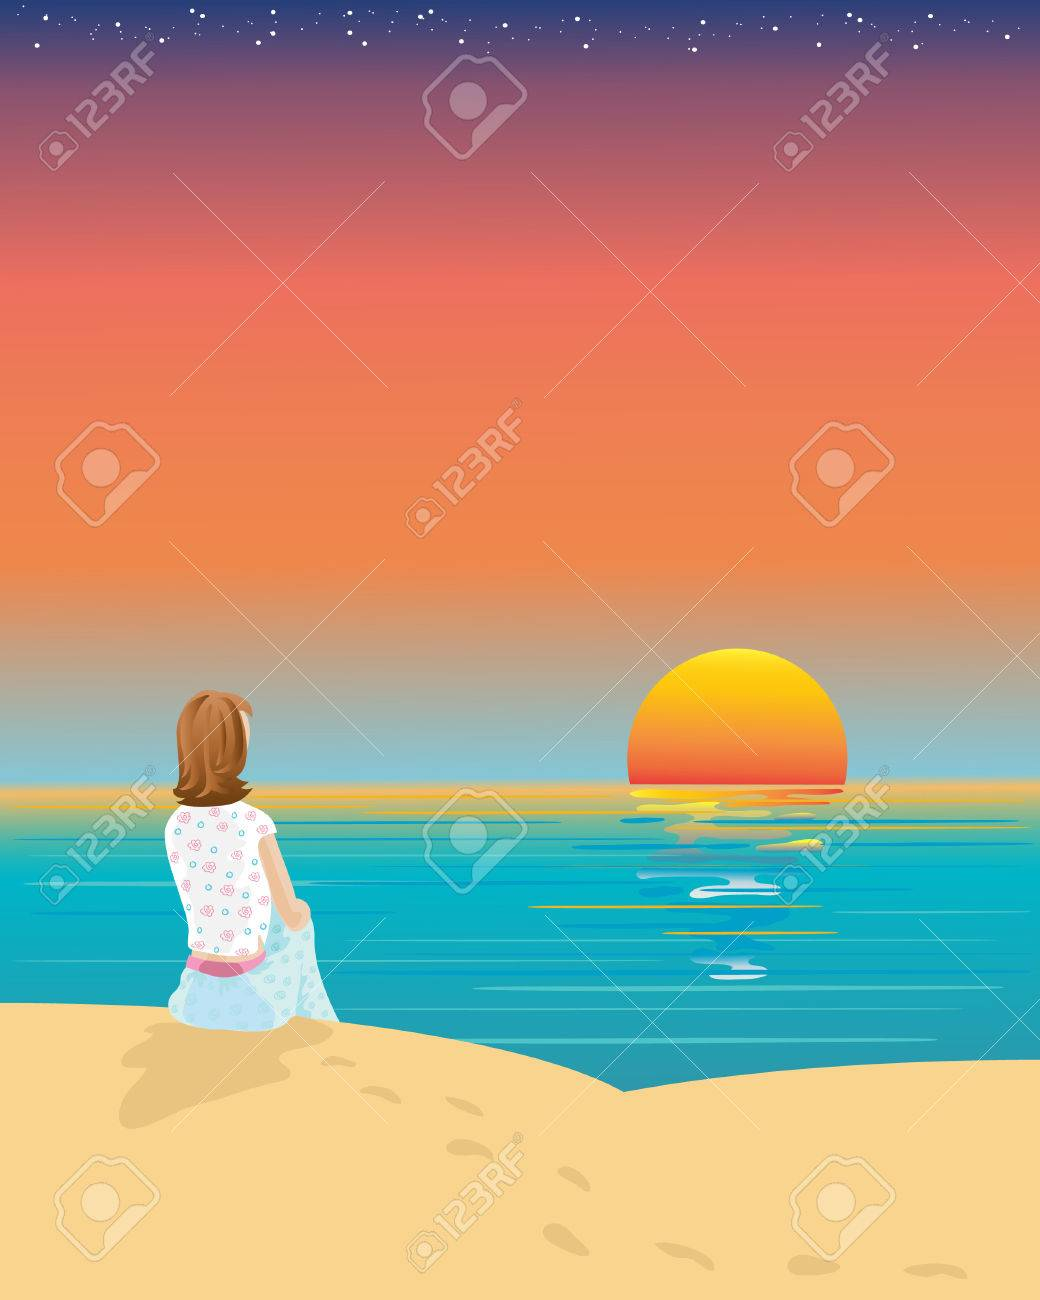 Drawings of Sunset at The Beach Beach Watching The Sunset